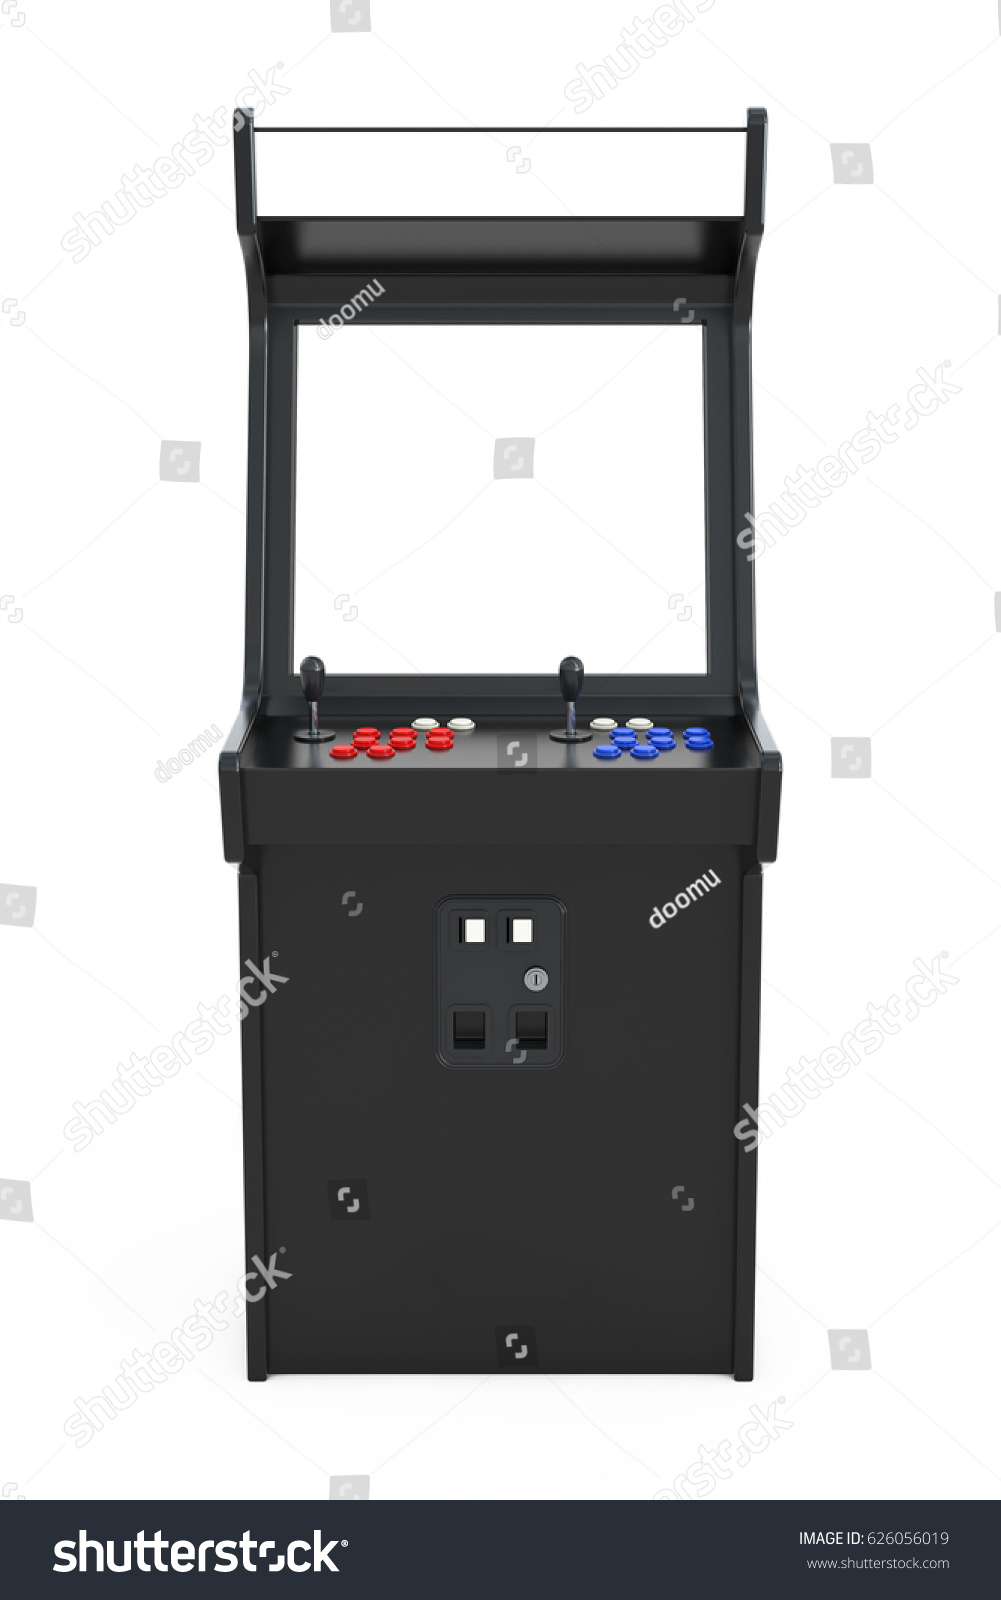 Gaming Arcade Machine Blank Screen Your Stock Illustration ...